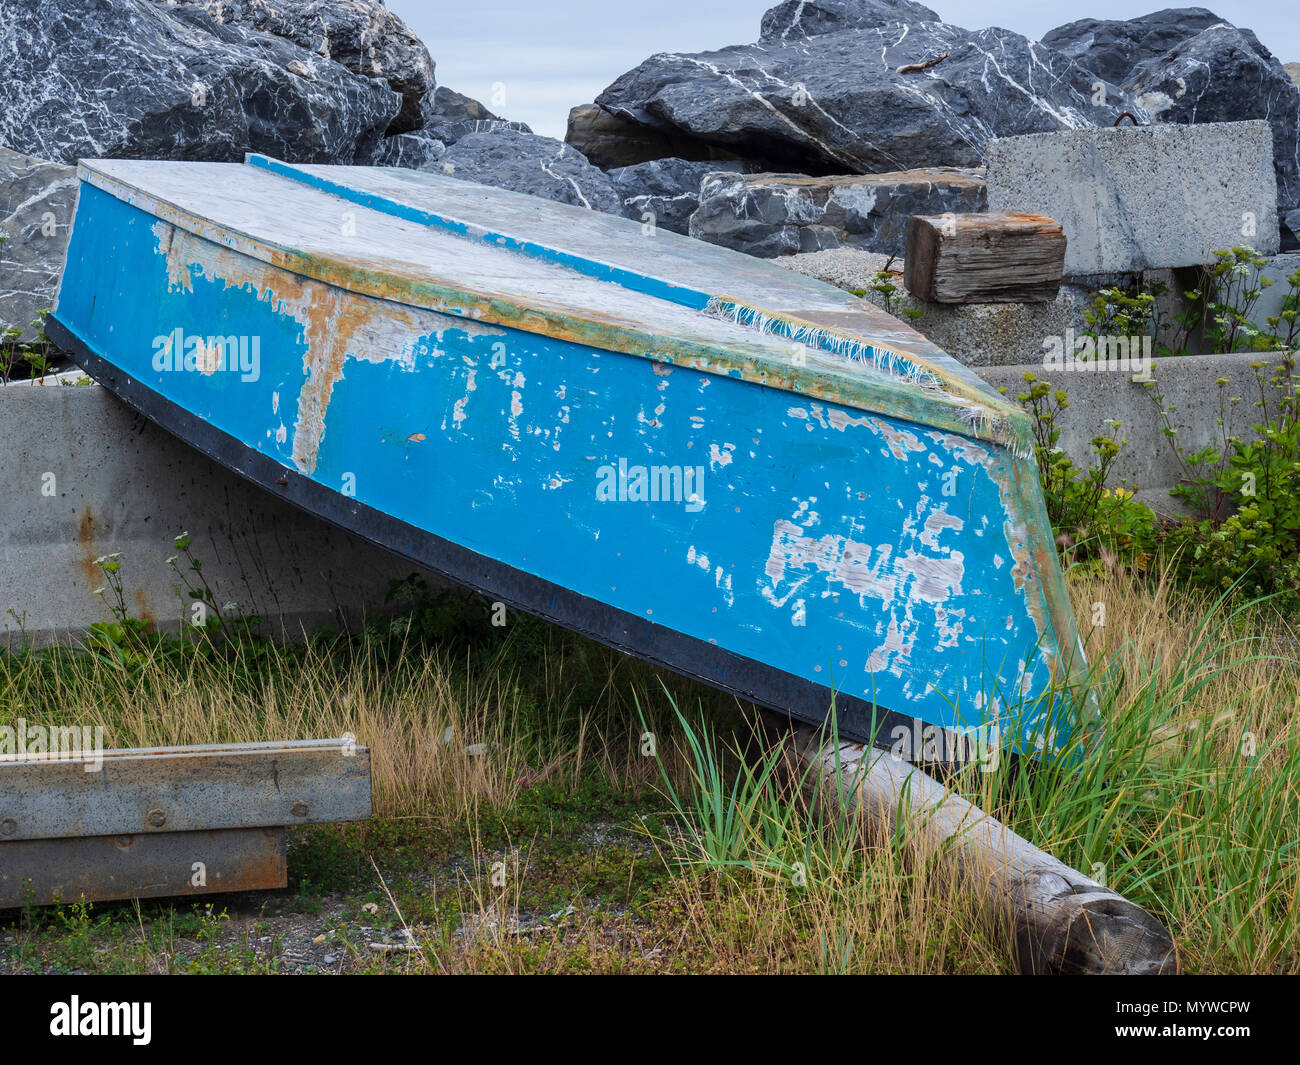 The village of overturned boats